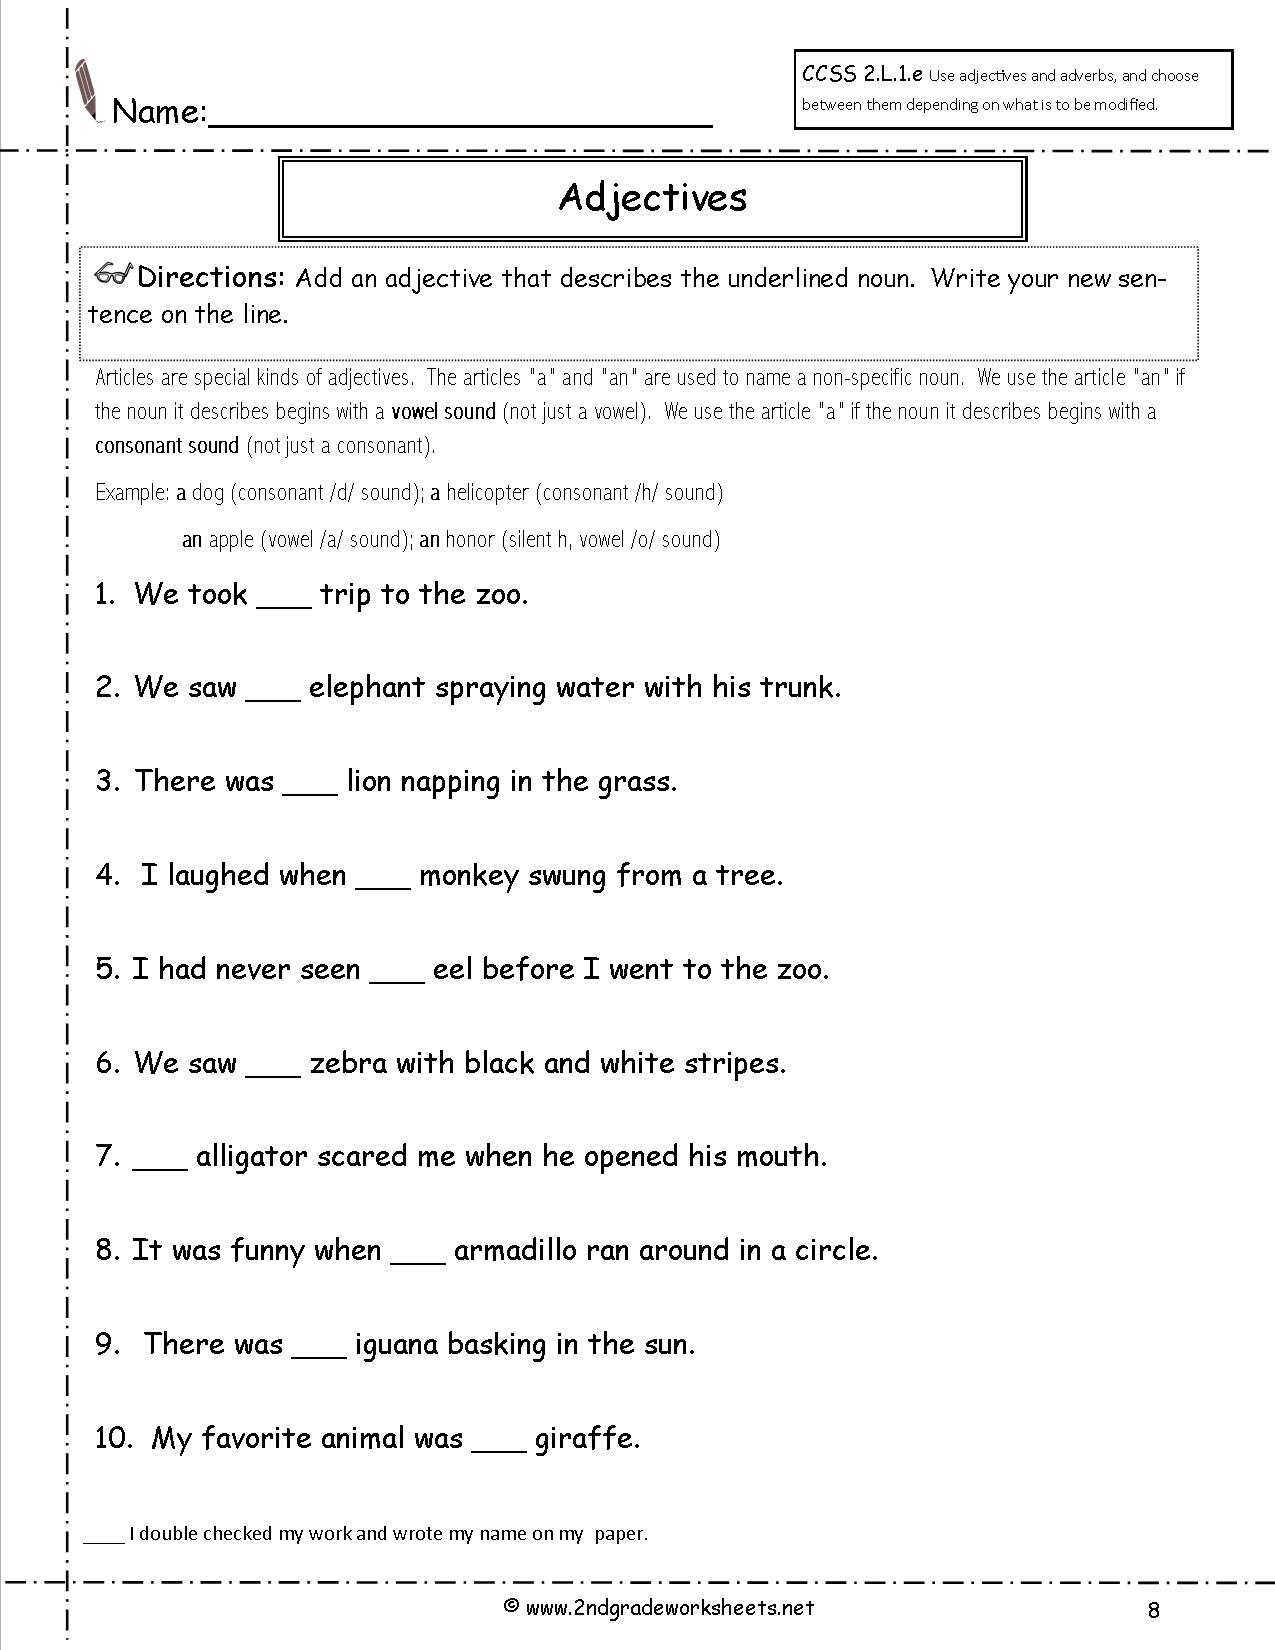 Free Language/grammar Worksheets And Printouts | Free Printable Grammar Worksheets